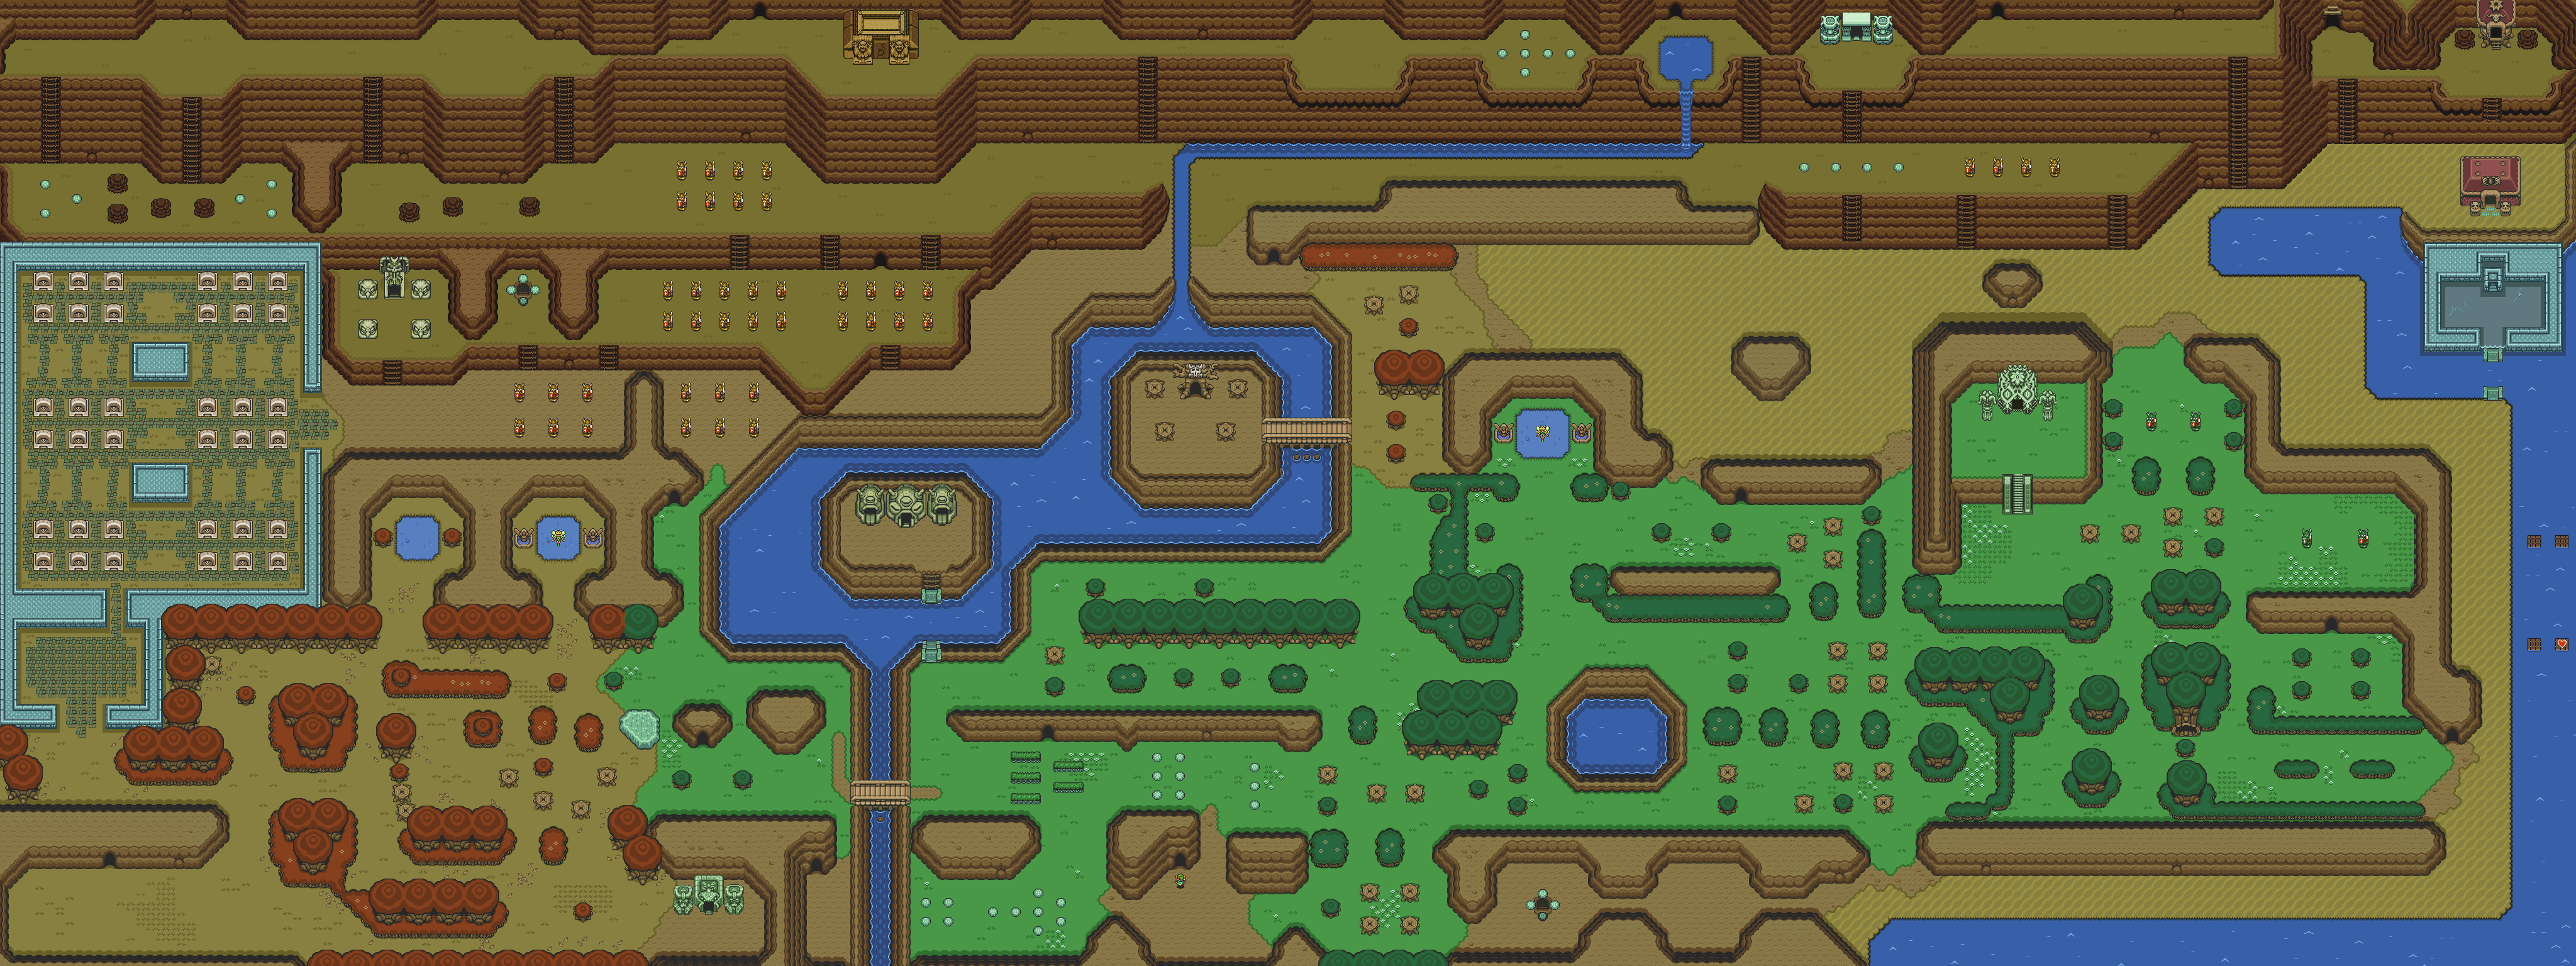 loz__map_remake___finished_by_aikokun-d4ef6hx Zelda Map on making a simple map, hyrule world map, skyward sword sky map, king's quest 1 map, tomb raider 1 map, portal 1 map, metal gear solid 1 map, assassin's creed 1 map, strategy 1 map, nes zelda world map, mario 1 map, legacy of the wizard map, zelda cheat map, zelda adventure map, majora's mask map, guild wars 1 map, zelda 3 map, history mind map, uncharted 1 map, the sims 1 map,